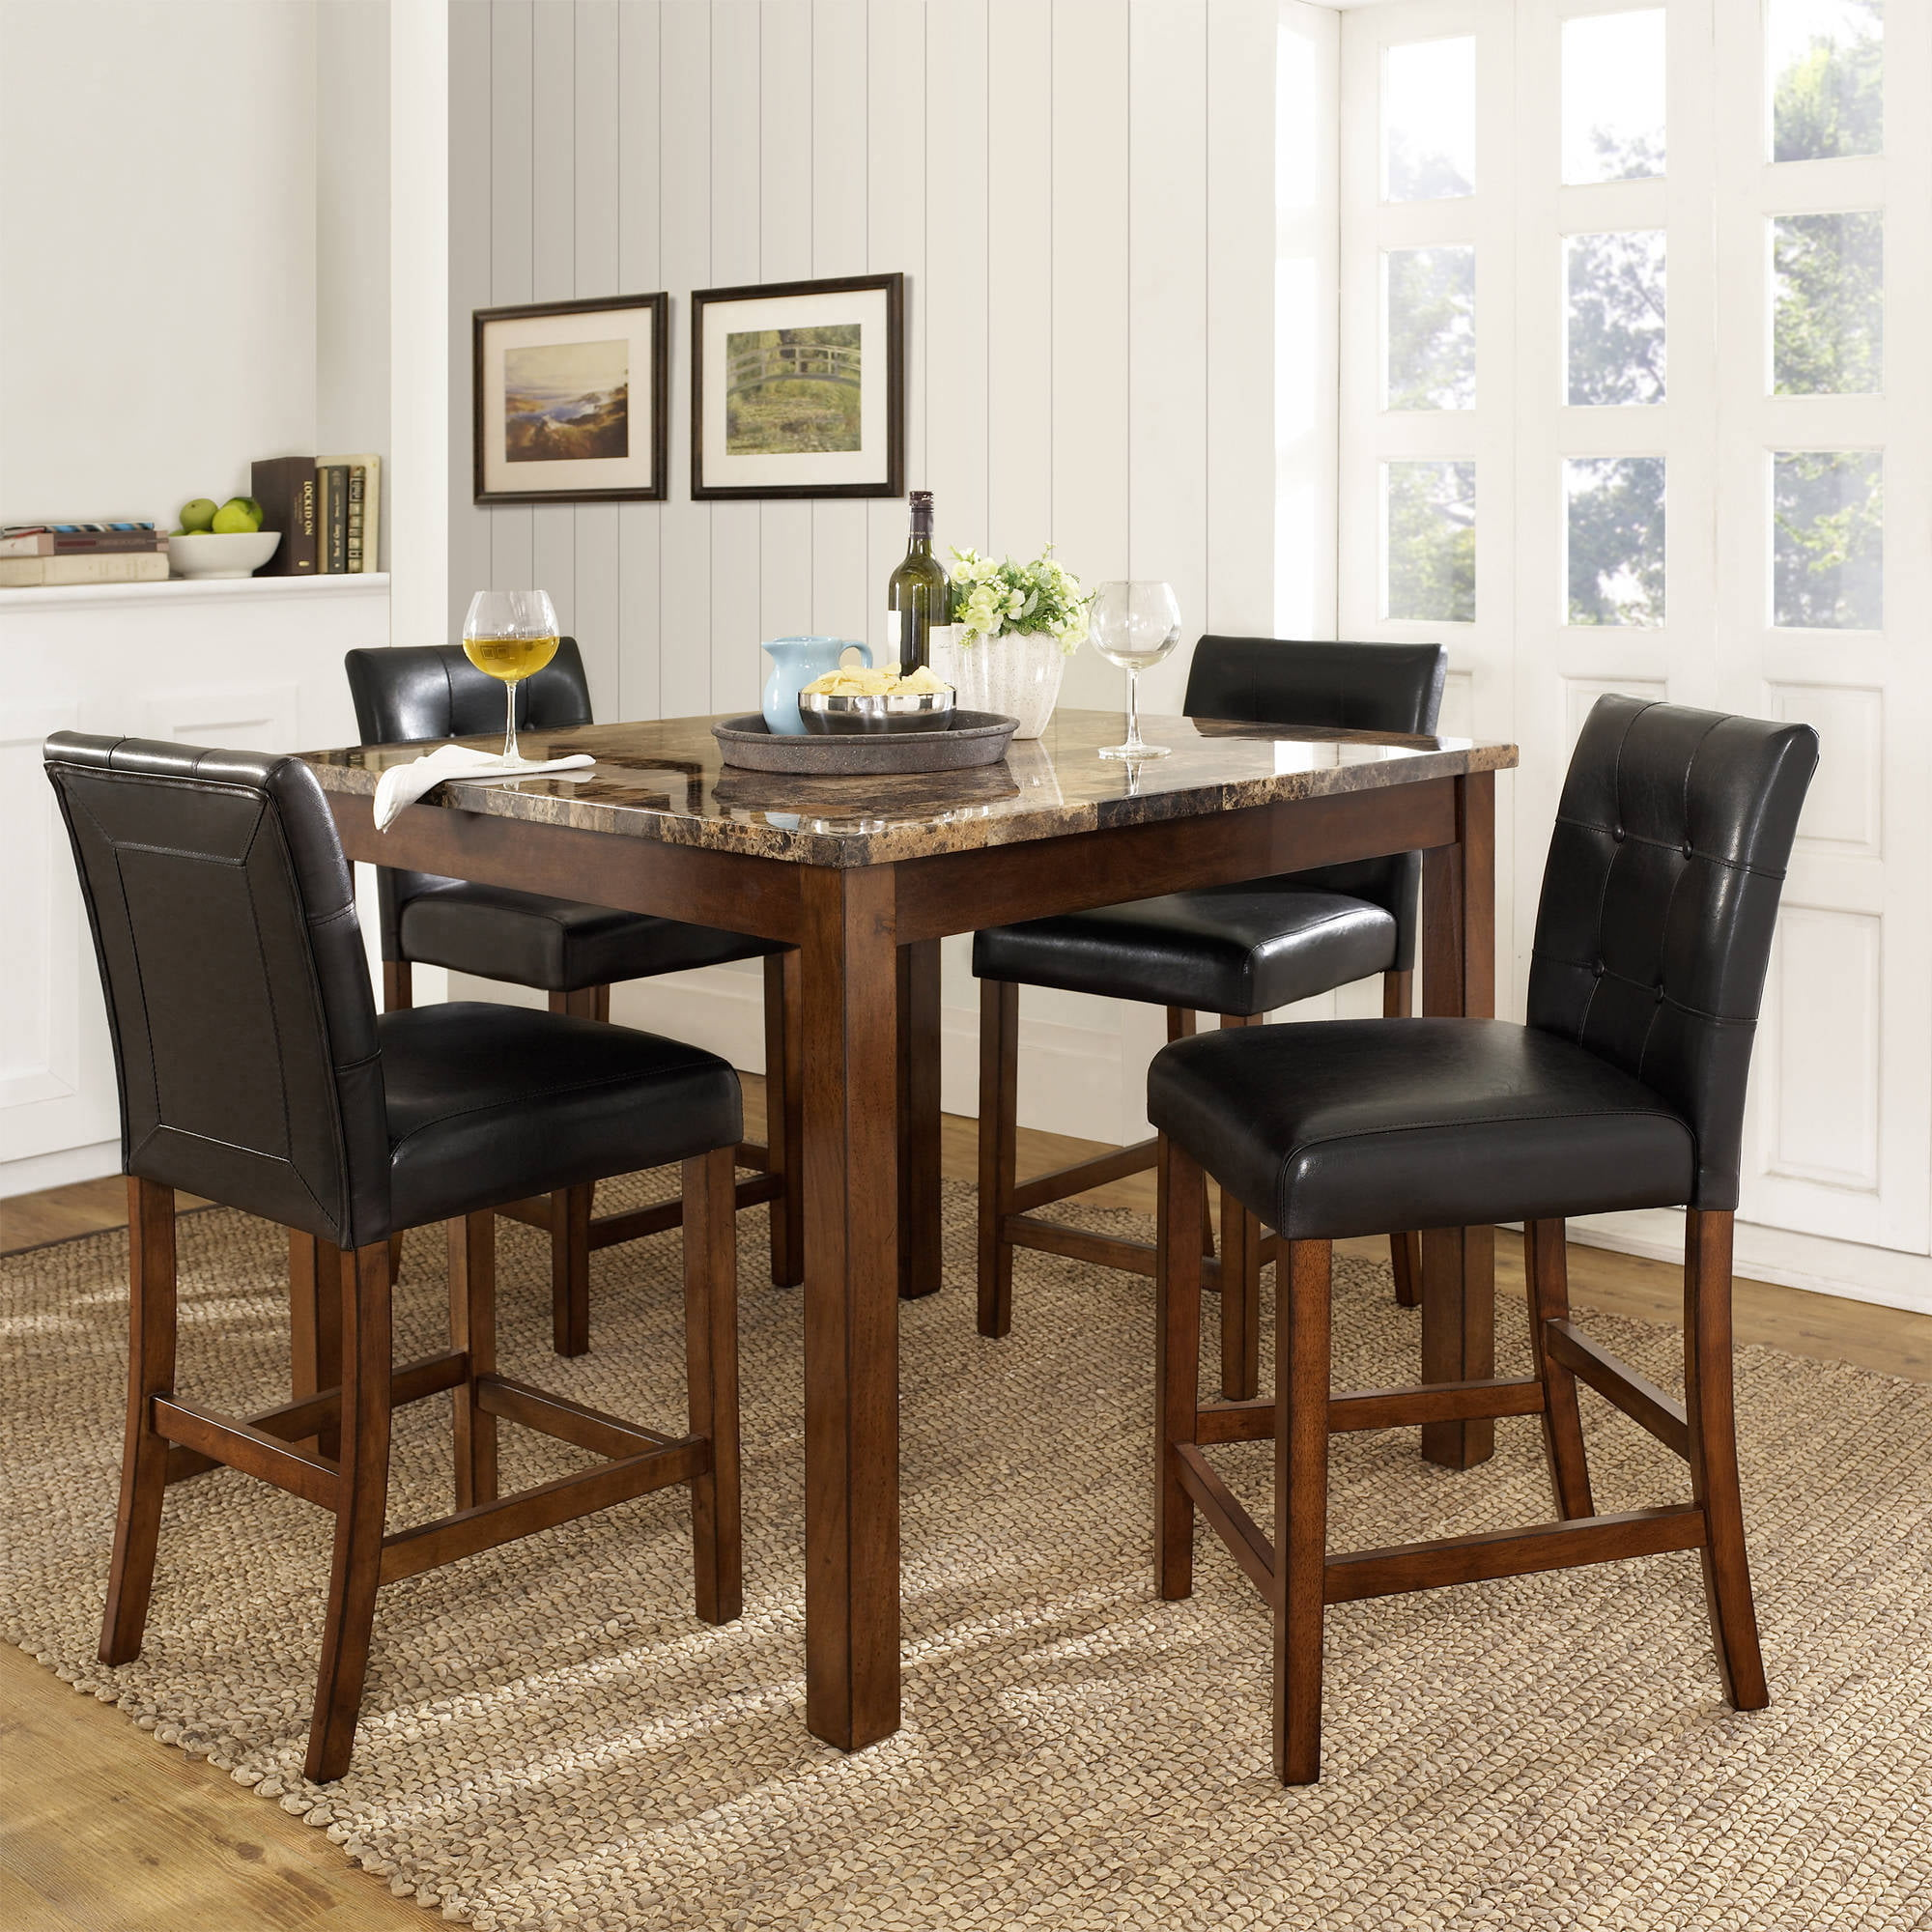 Dining Room Table Pictures Awesome Kitchen & Dining Furniture  Walmart Review